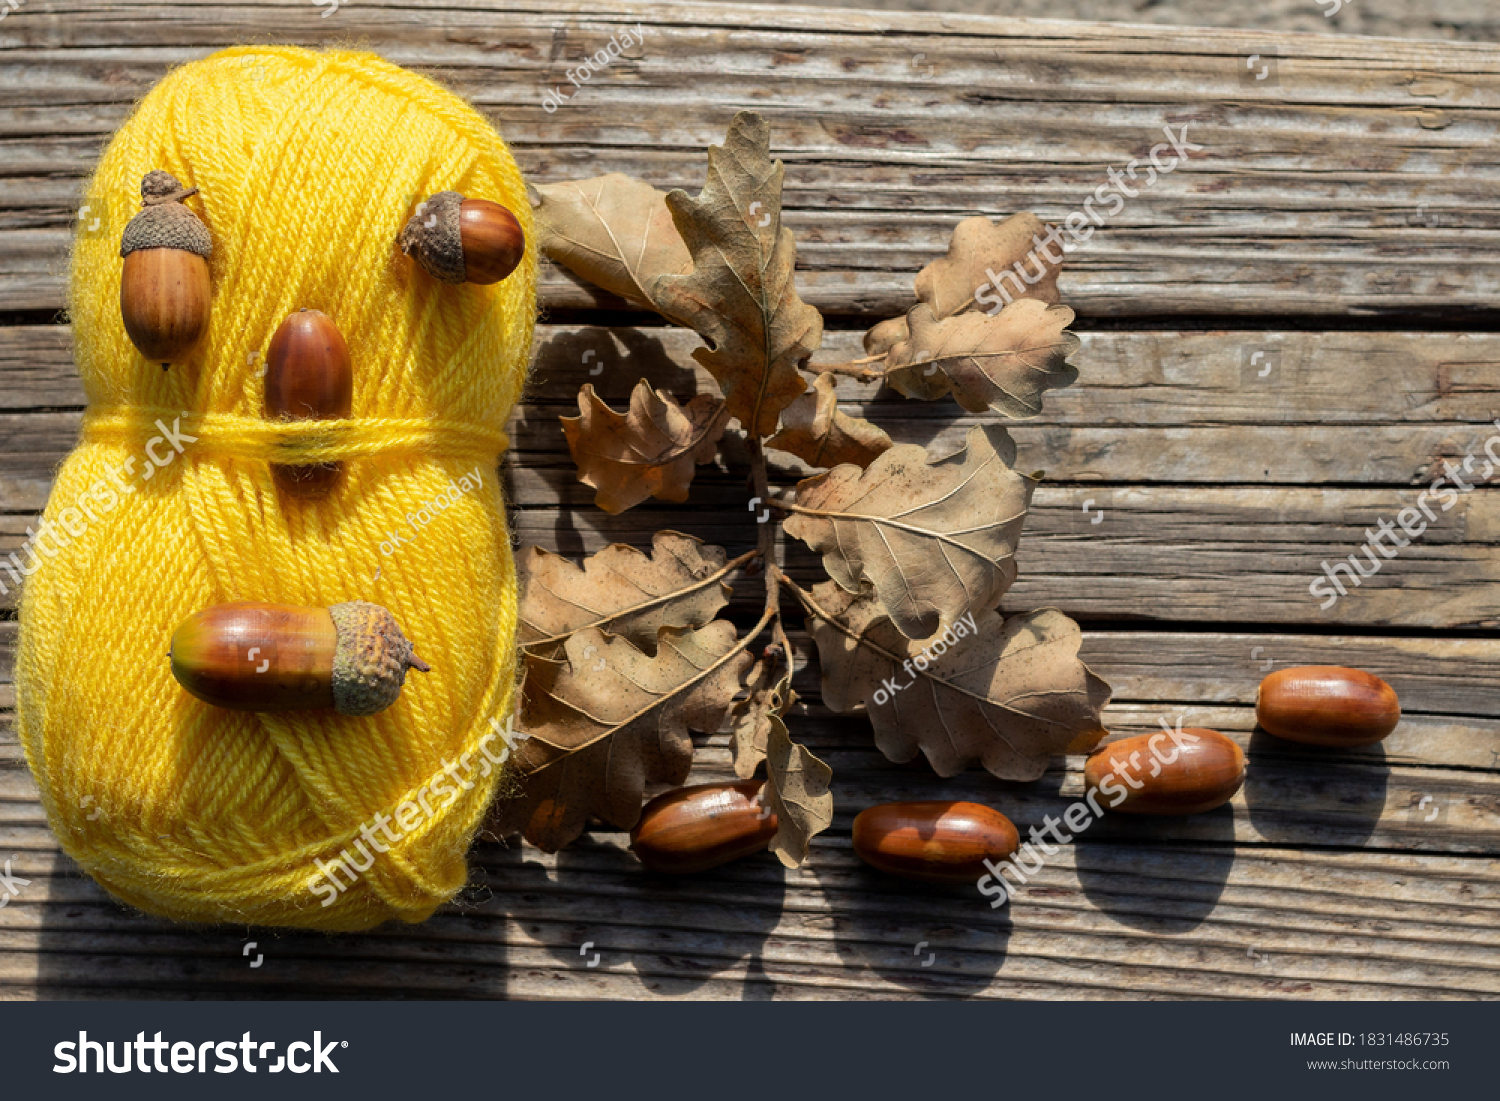 Autumn plot: a skein of yellow knitting thread and ripe acorns with oak leaves on a wooden board